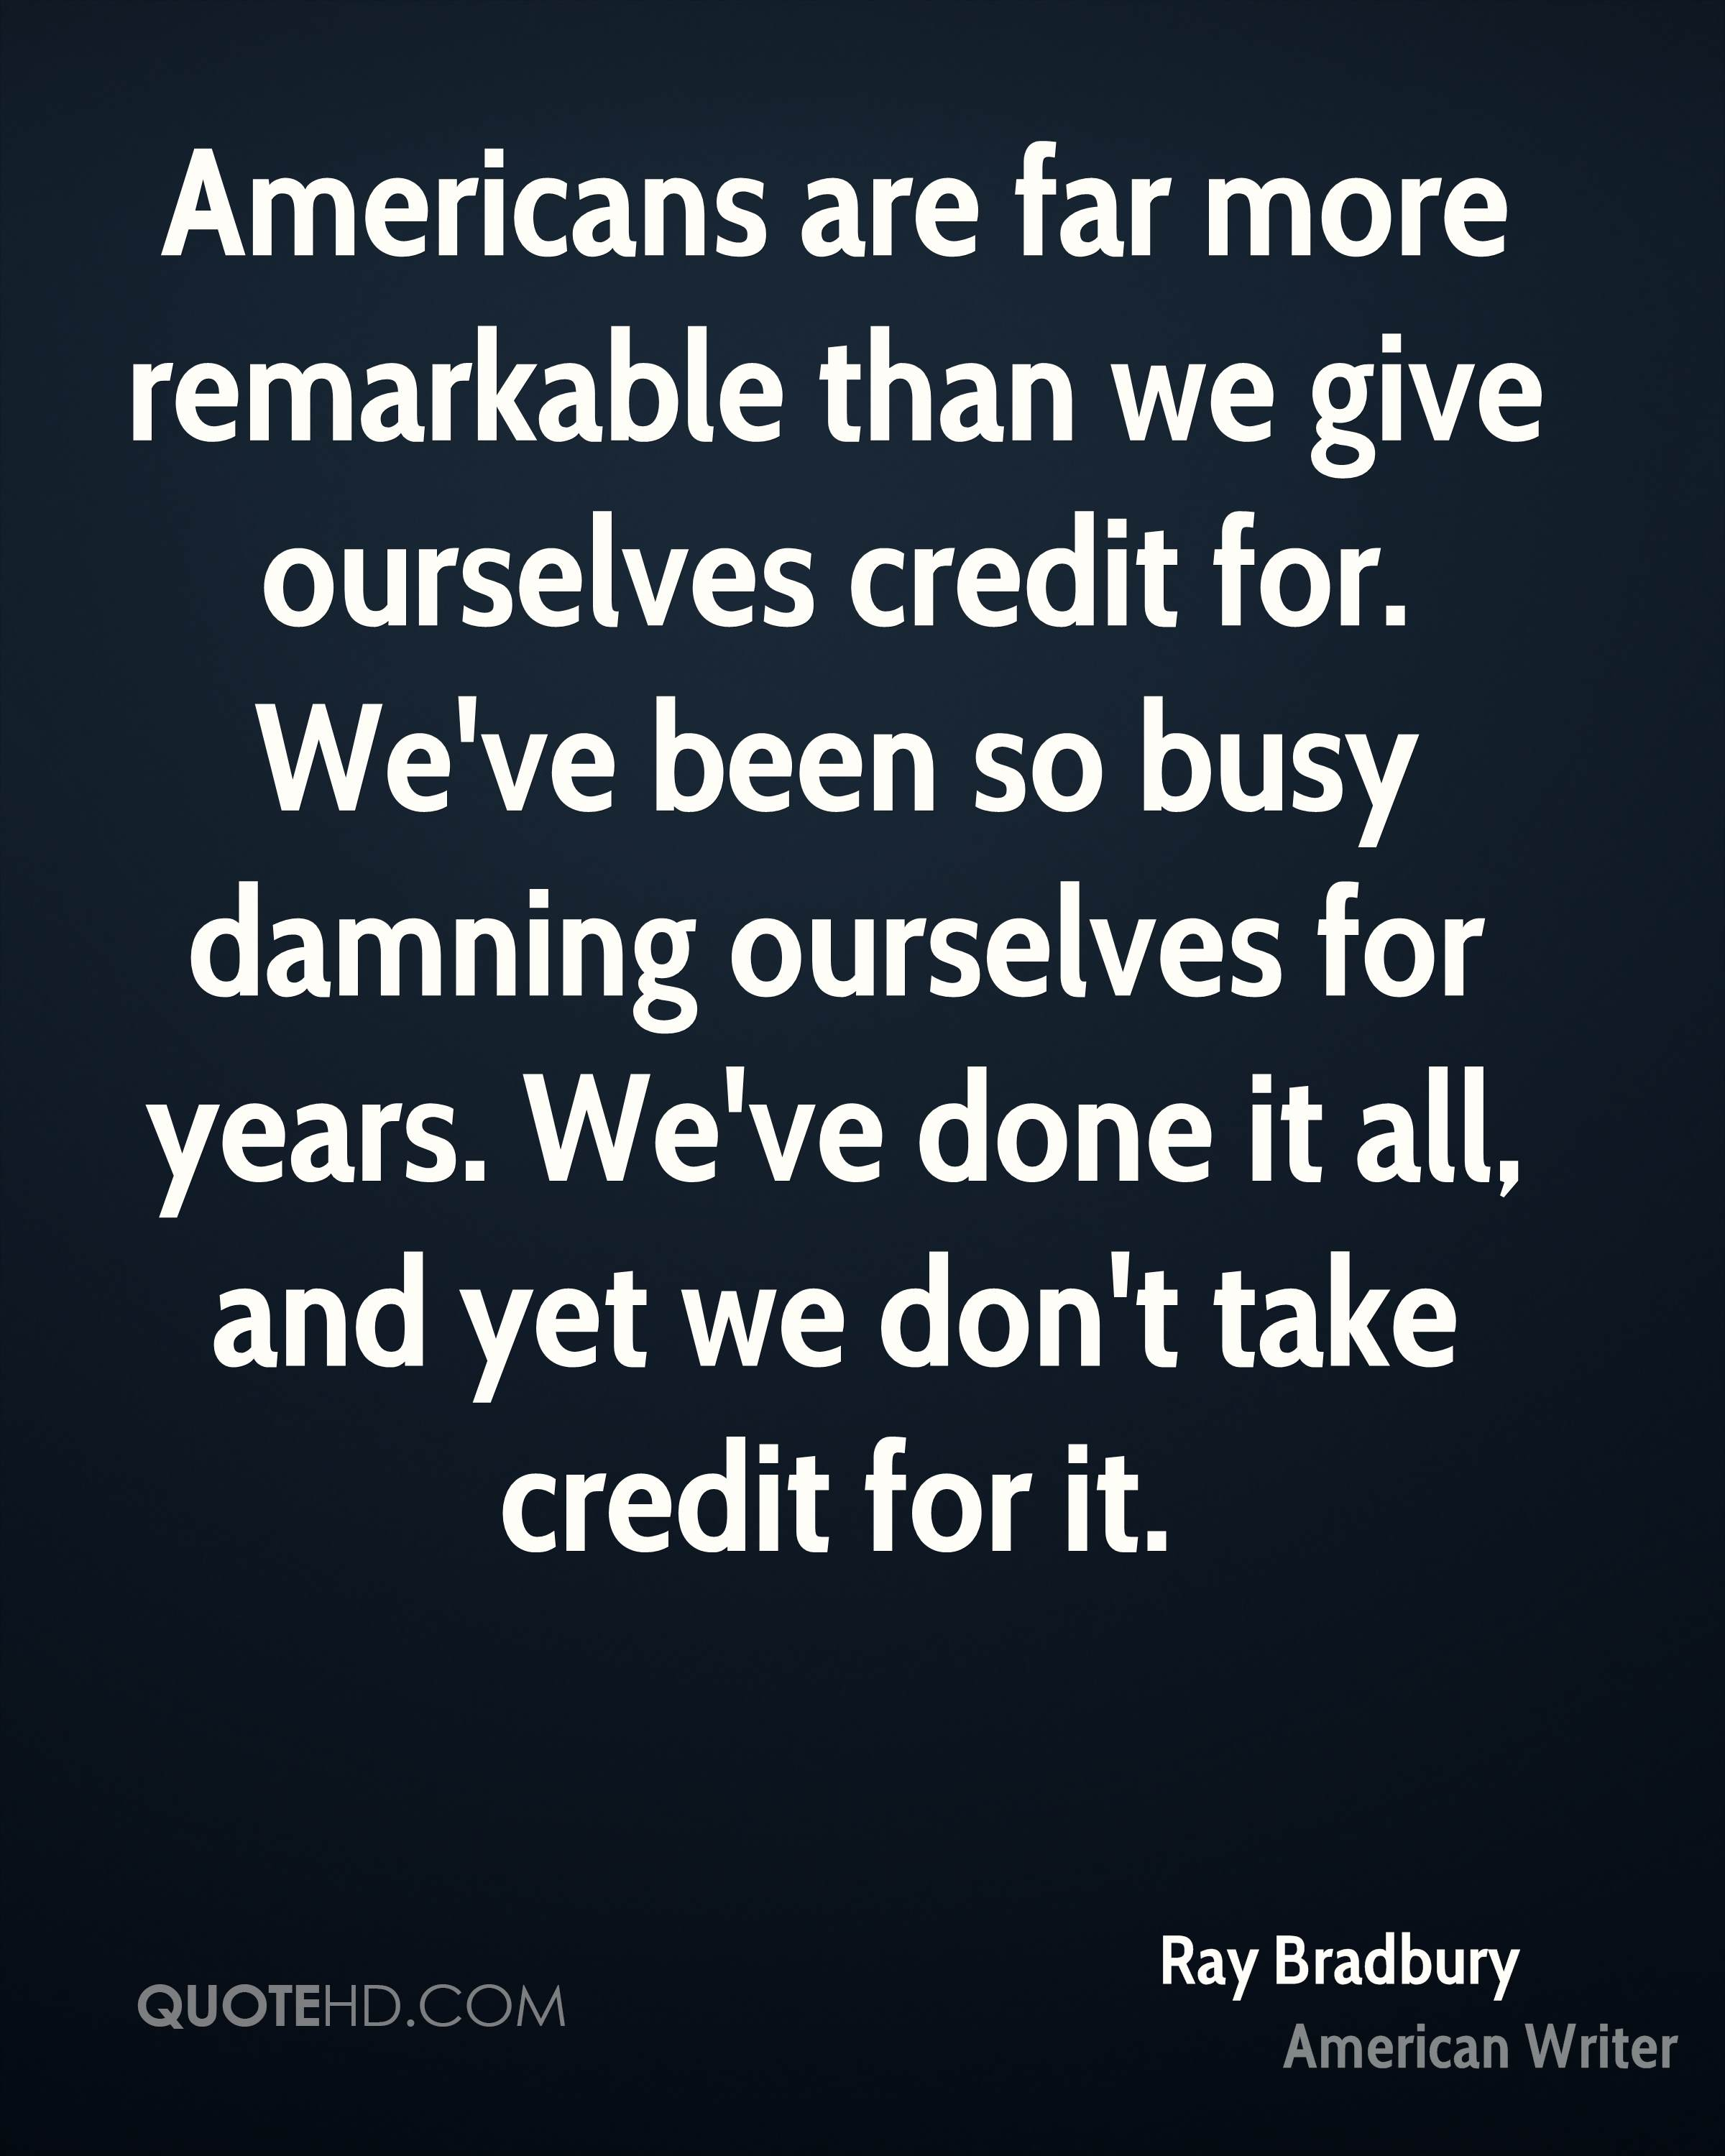 Americans are far more remarkable than we give ourselves credit for. We've been so busy damning ourselves for years. We've done it all, and yet we don't take credit for it.